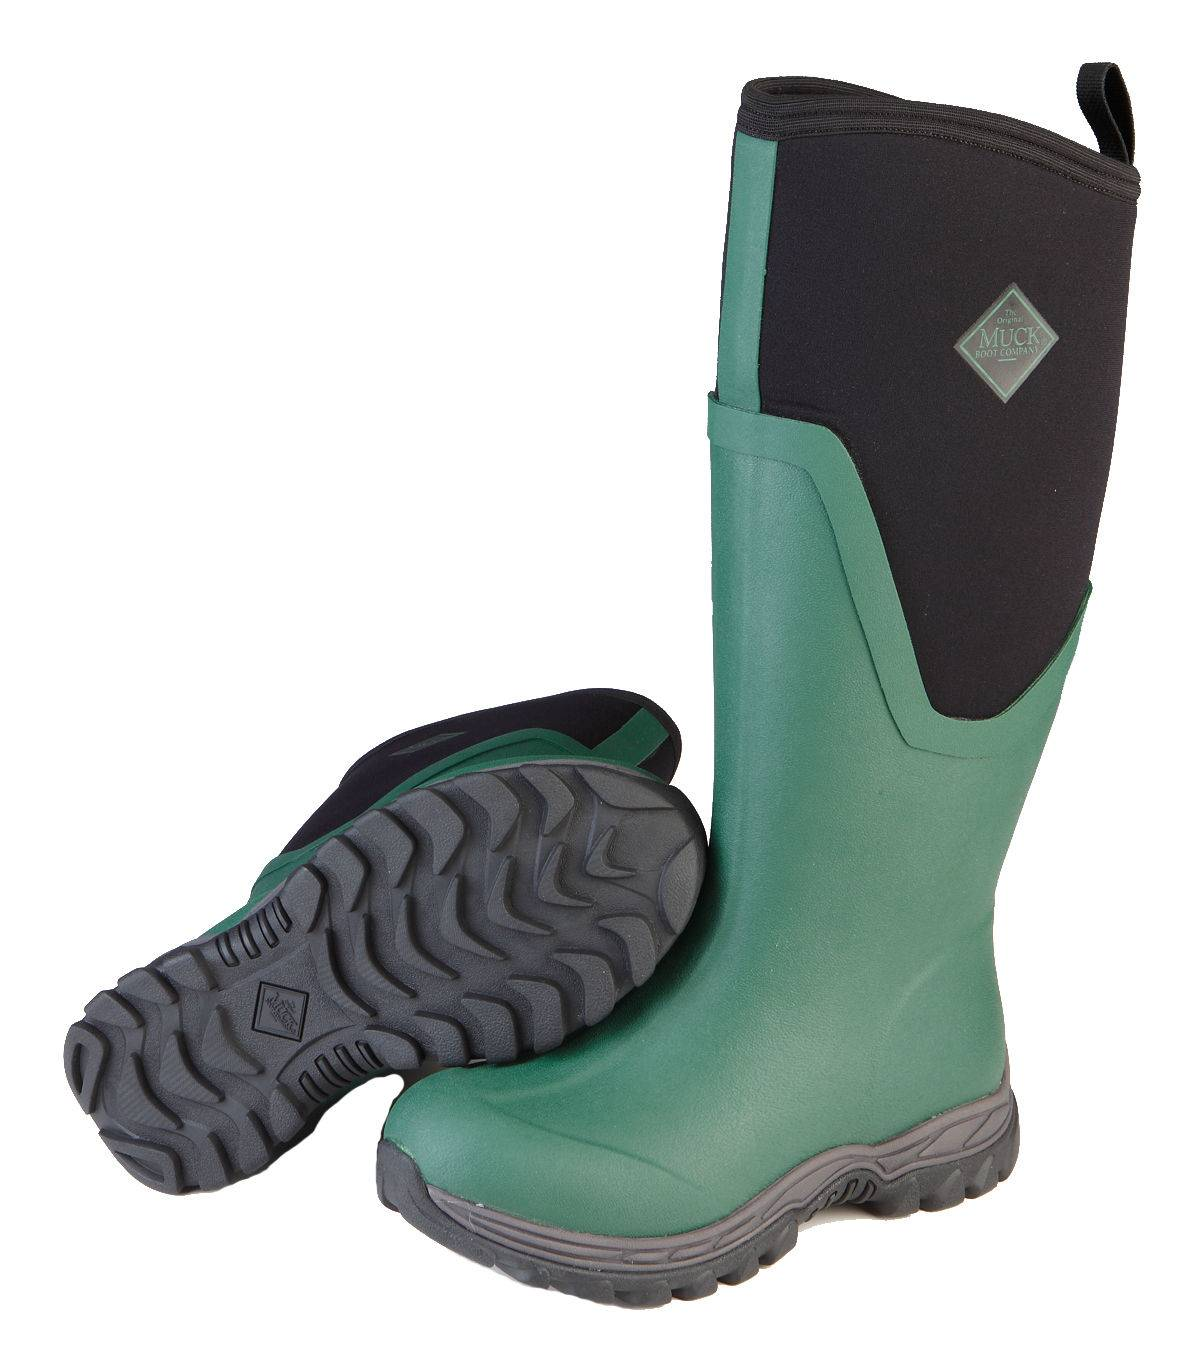 Muck Boots Arctic Sport II Tall - Ladies - Green